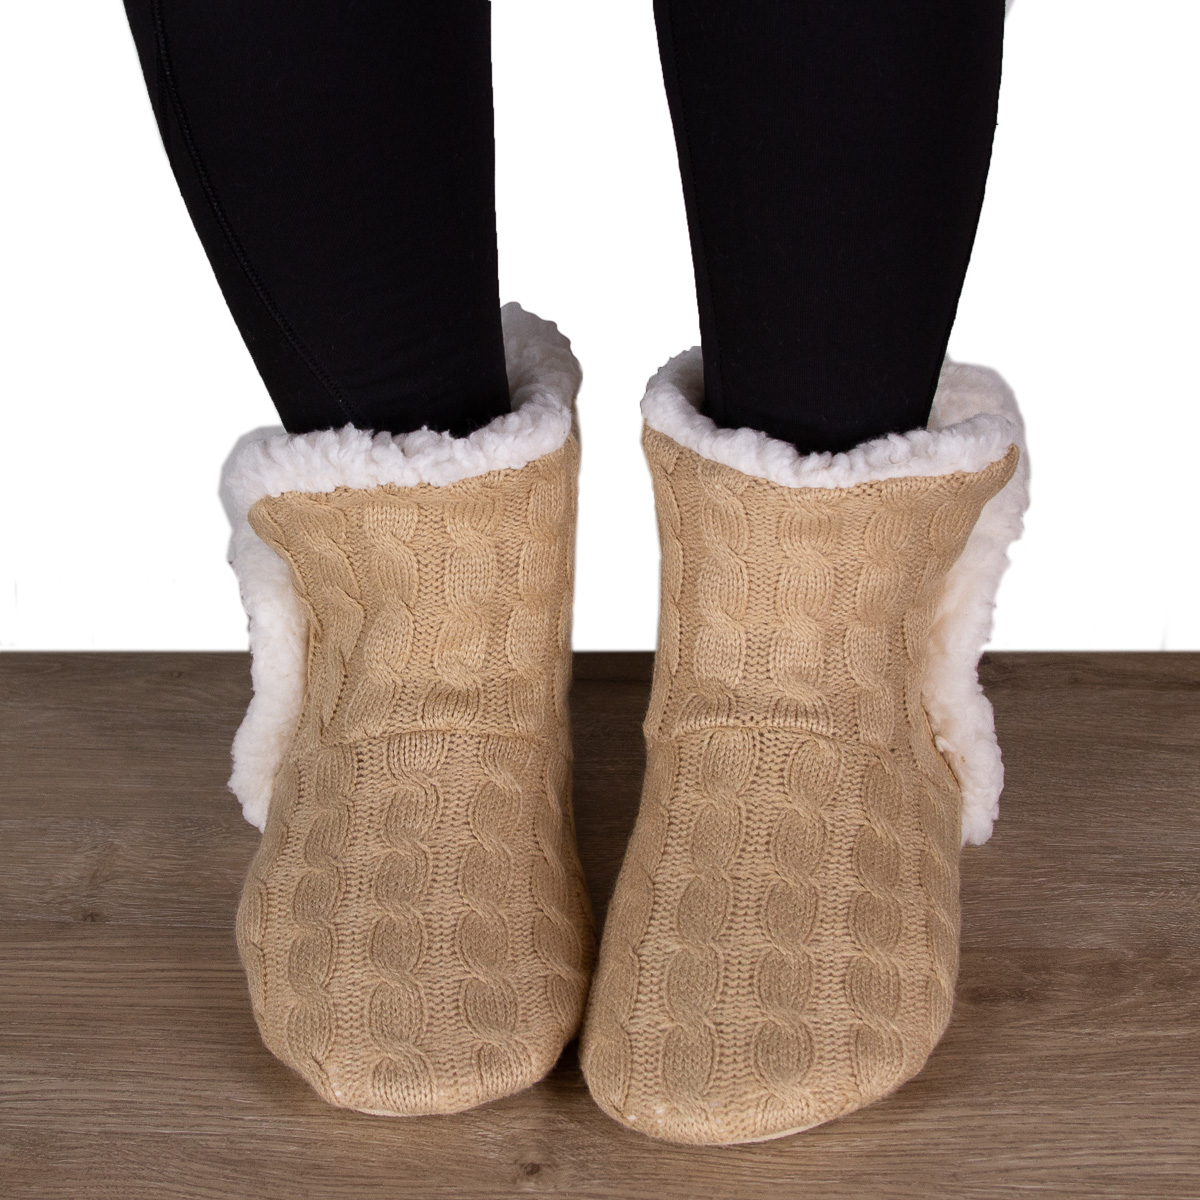 thumbnail 32 - Yelete Women's Cable Knit Slippers House Booties Soft Sherpa Lining Rubber Soles